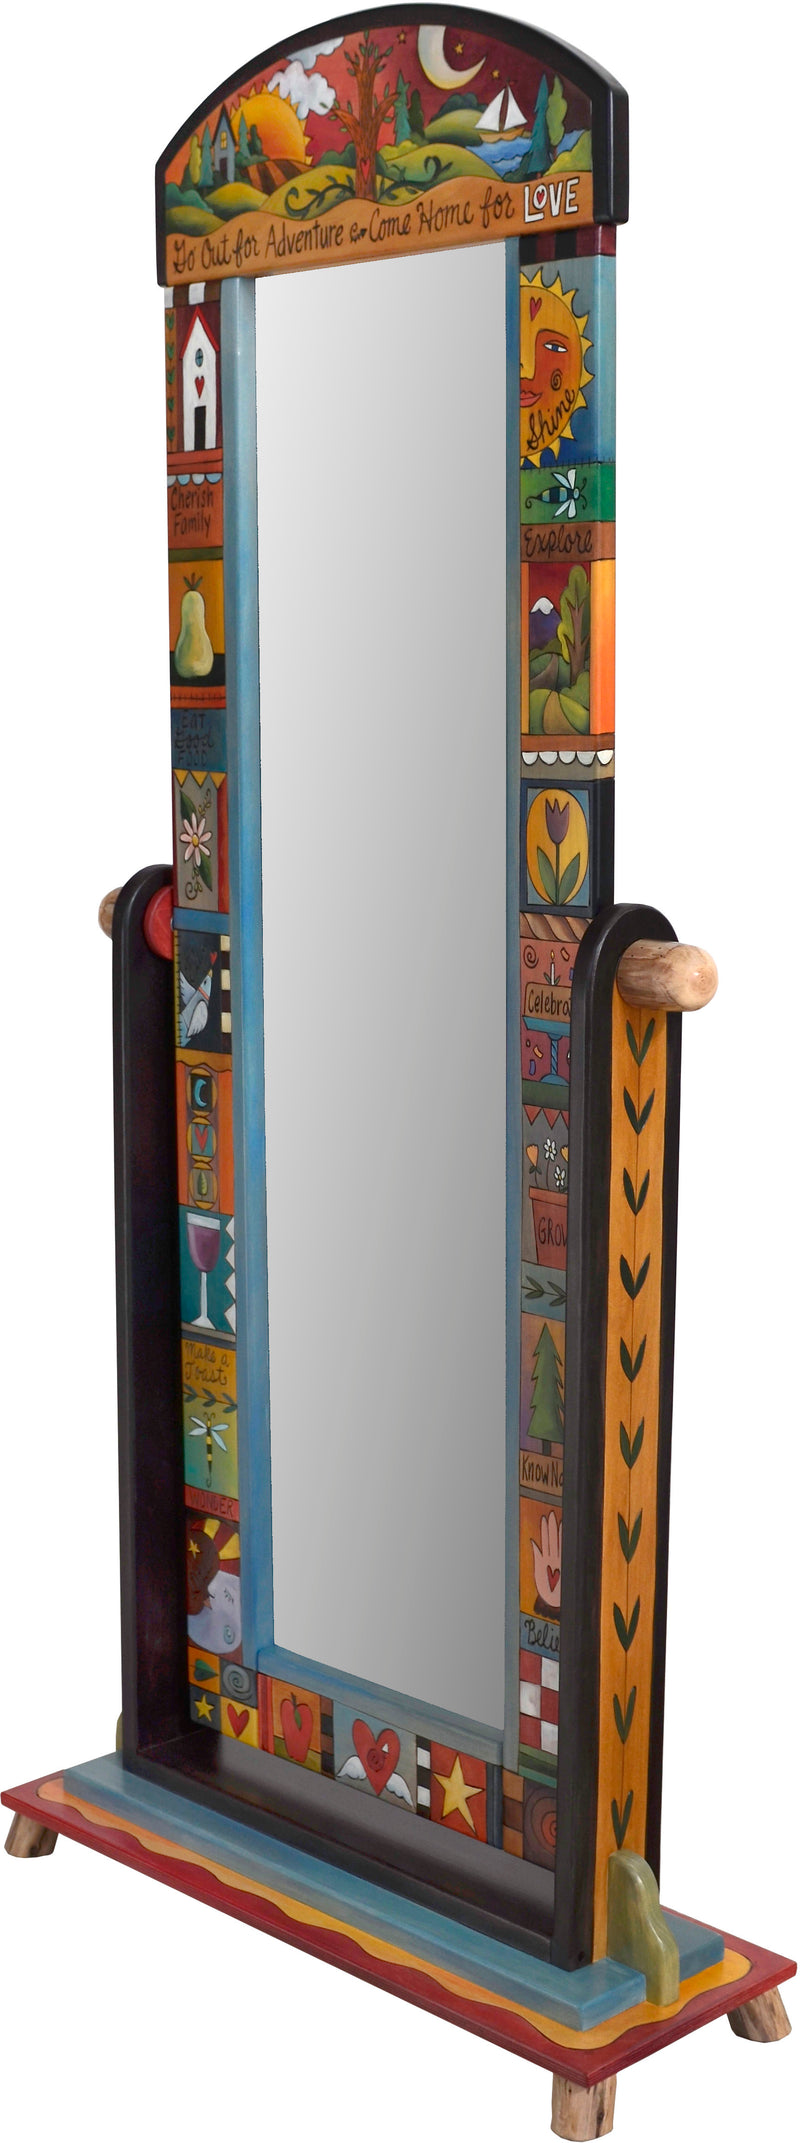 "Wardrobe Mirror on Stand –  ""Go Out for Adventure/Come Home for Love"" mirror on stand with sun and moon over the tree of life motif"